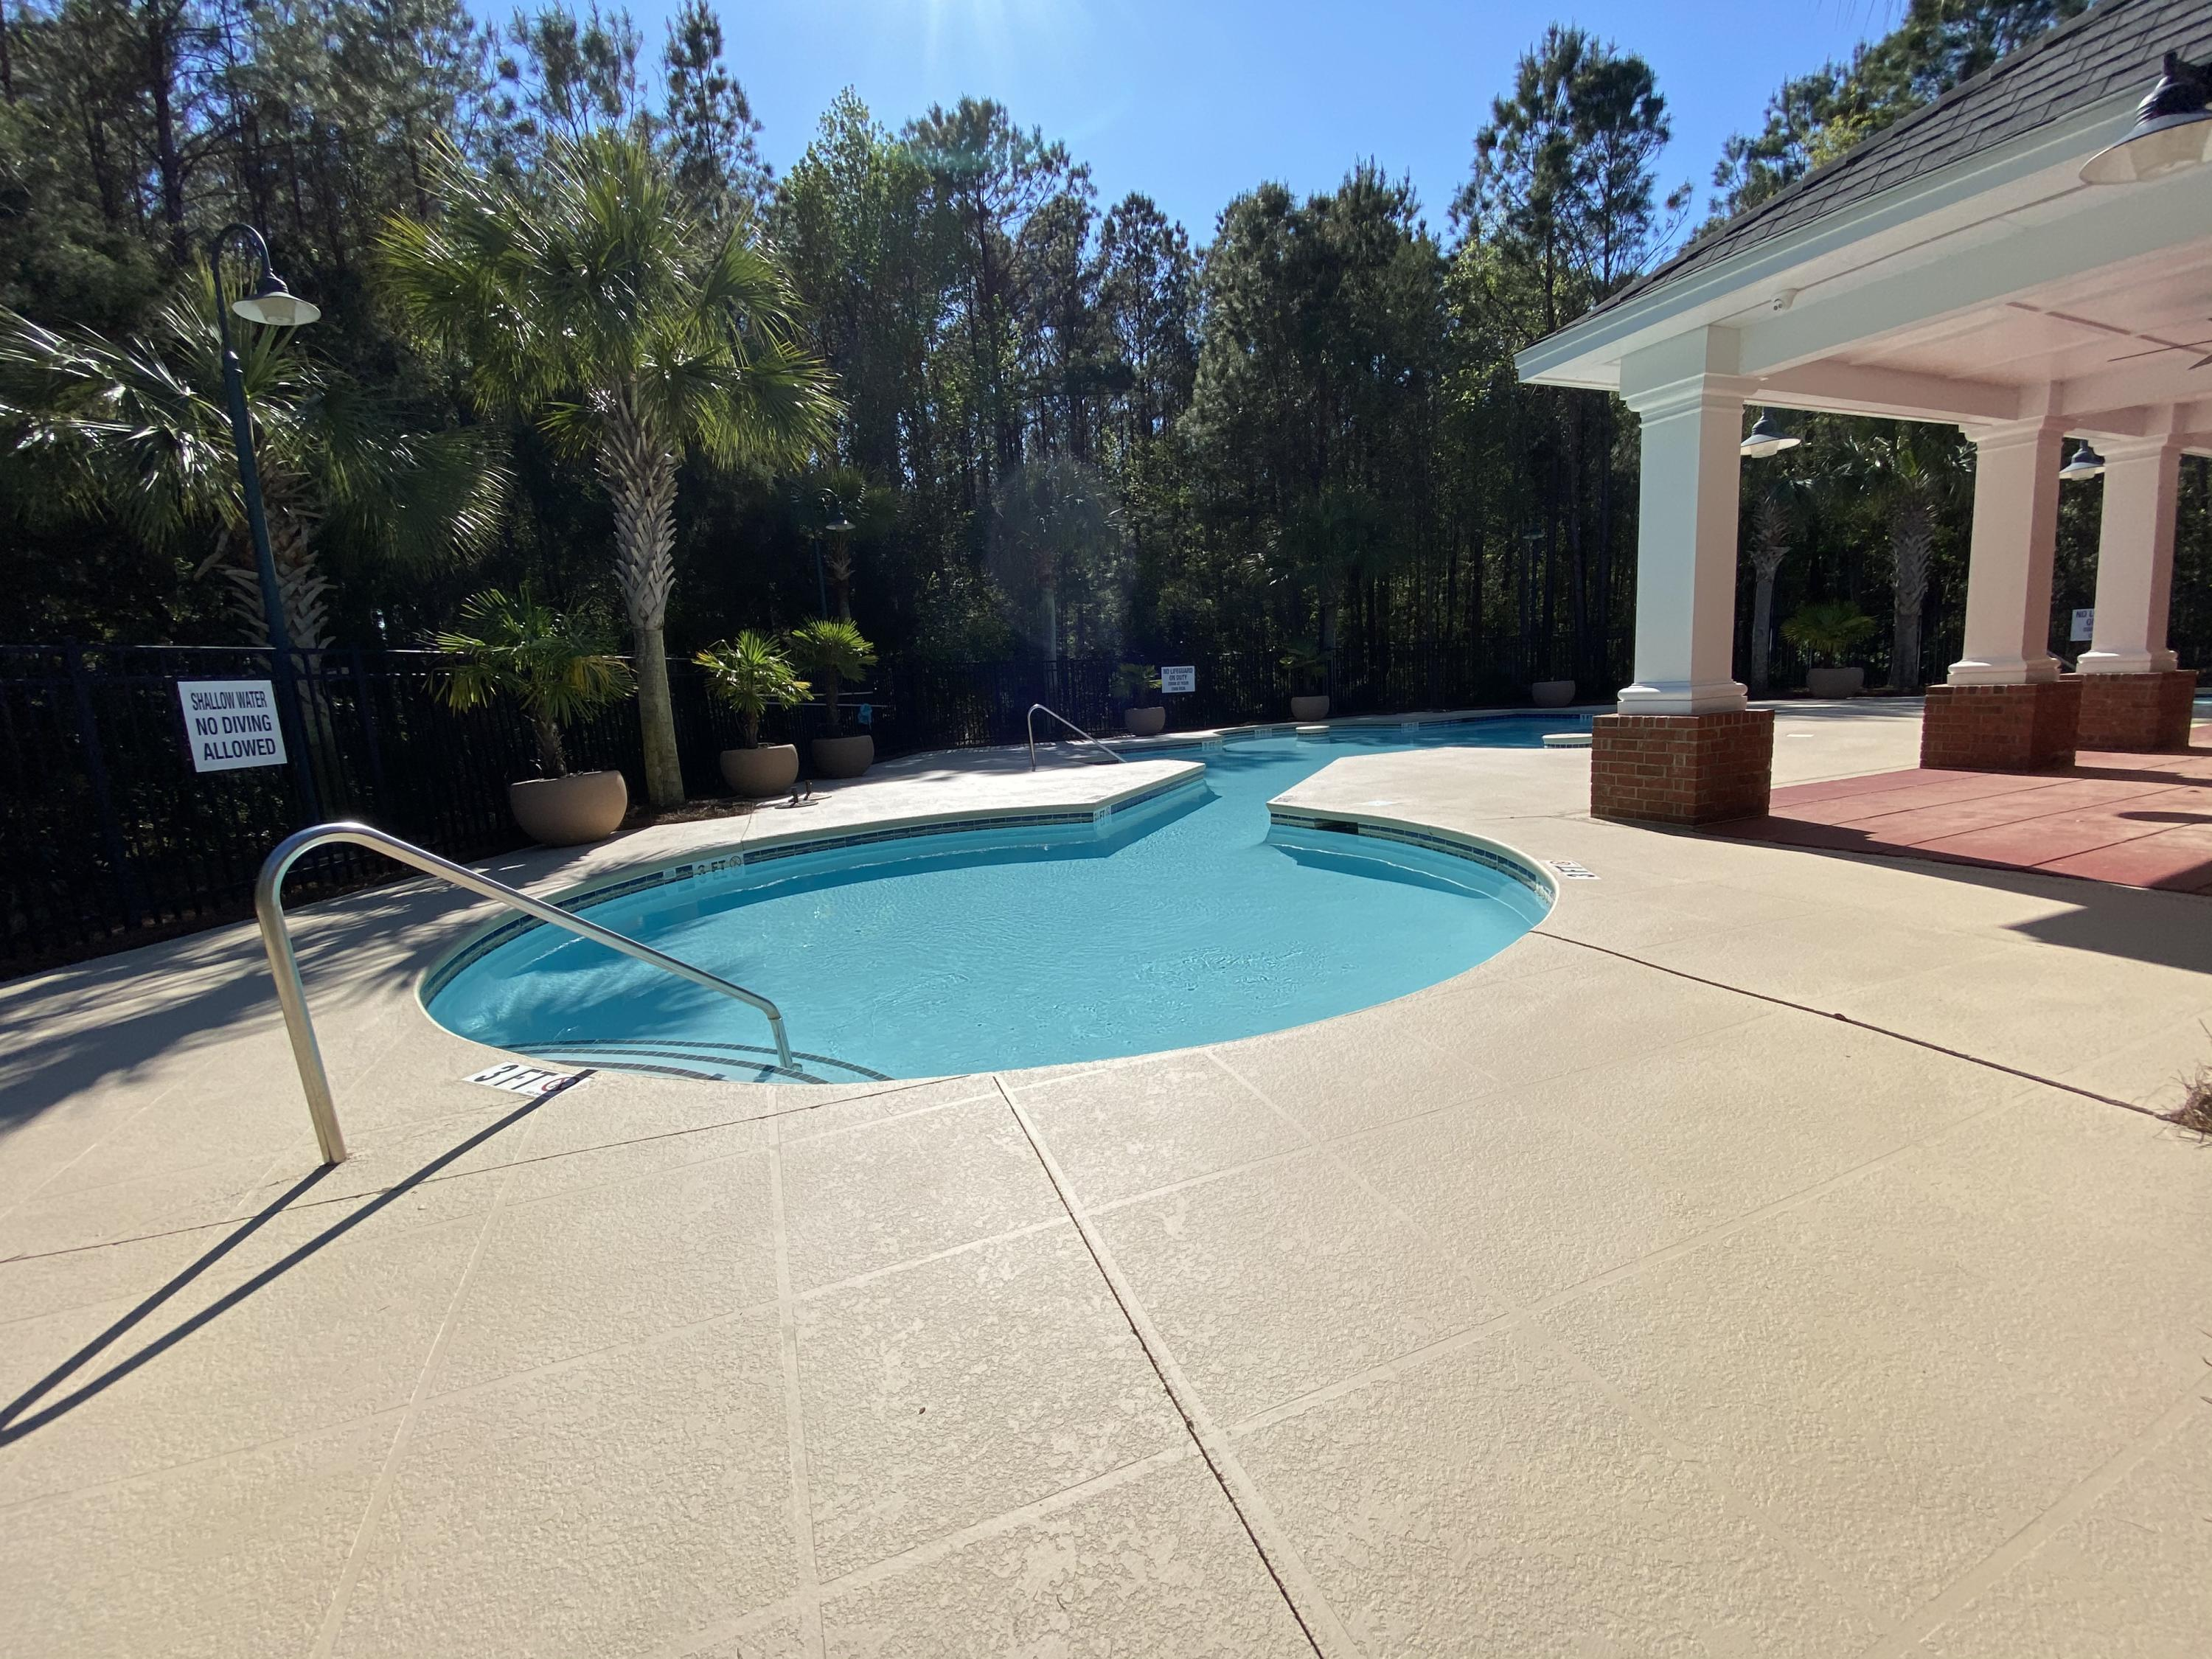 Nelliefield Plantation Homes For Sale - 105 Oolong Tea, Charleston, SC - 6